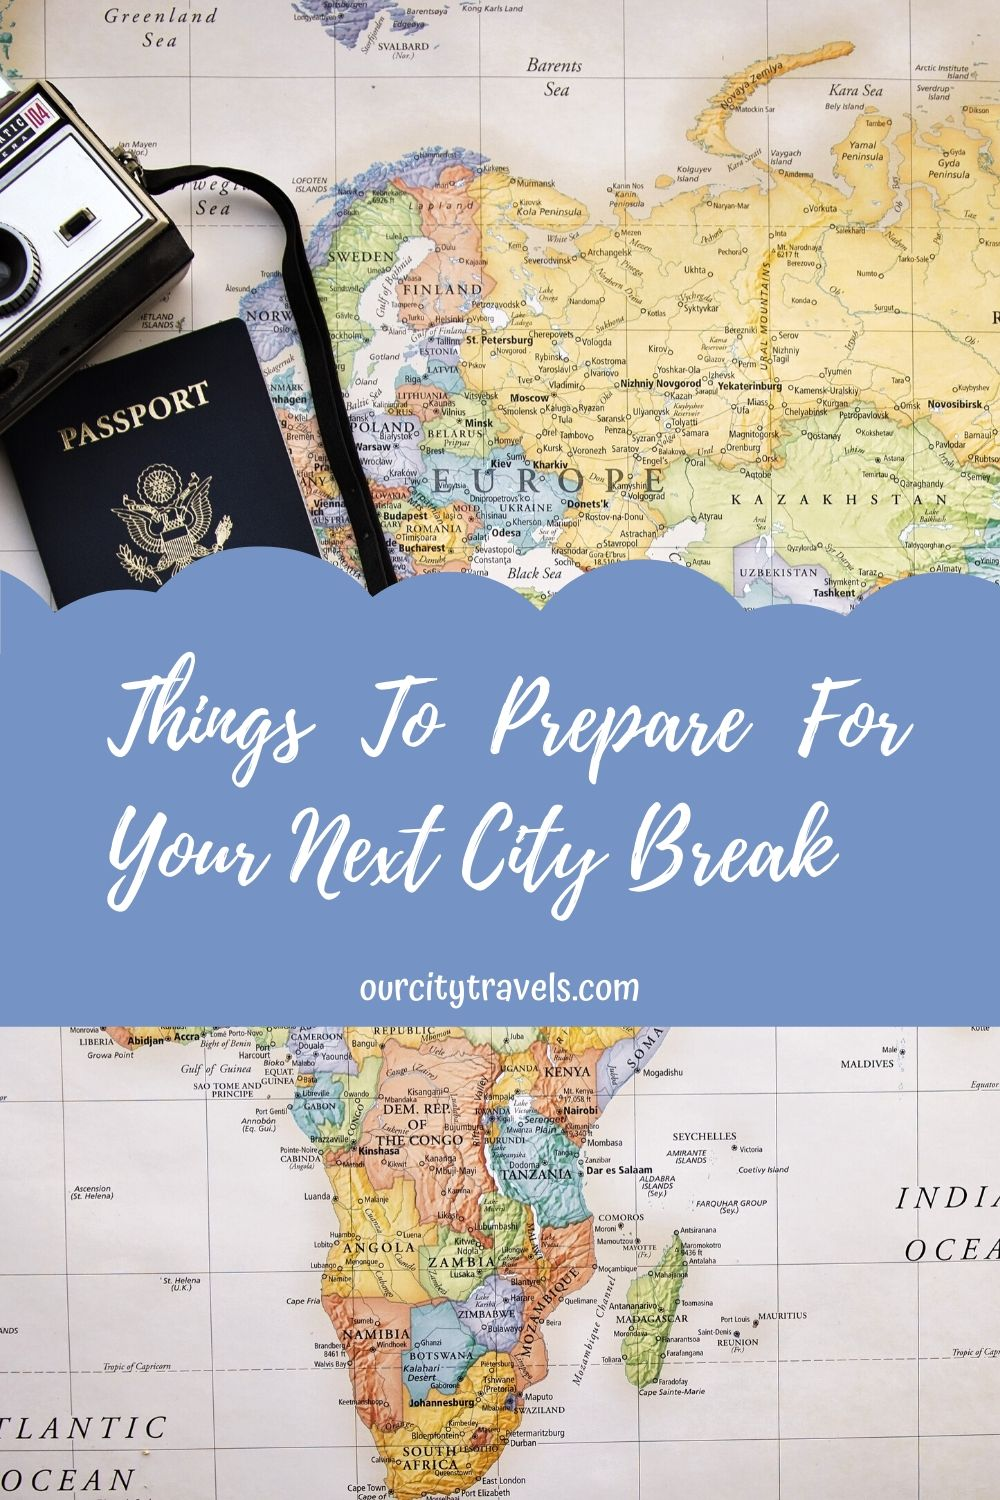 8 Things To Prepare For Your Next City Break